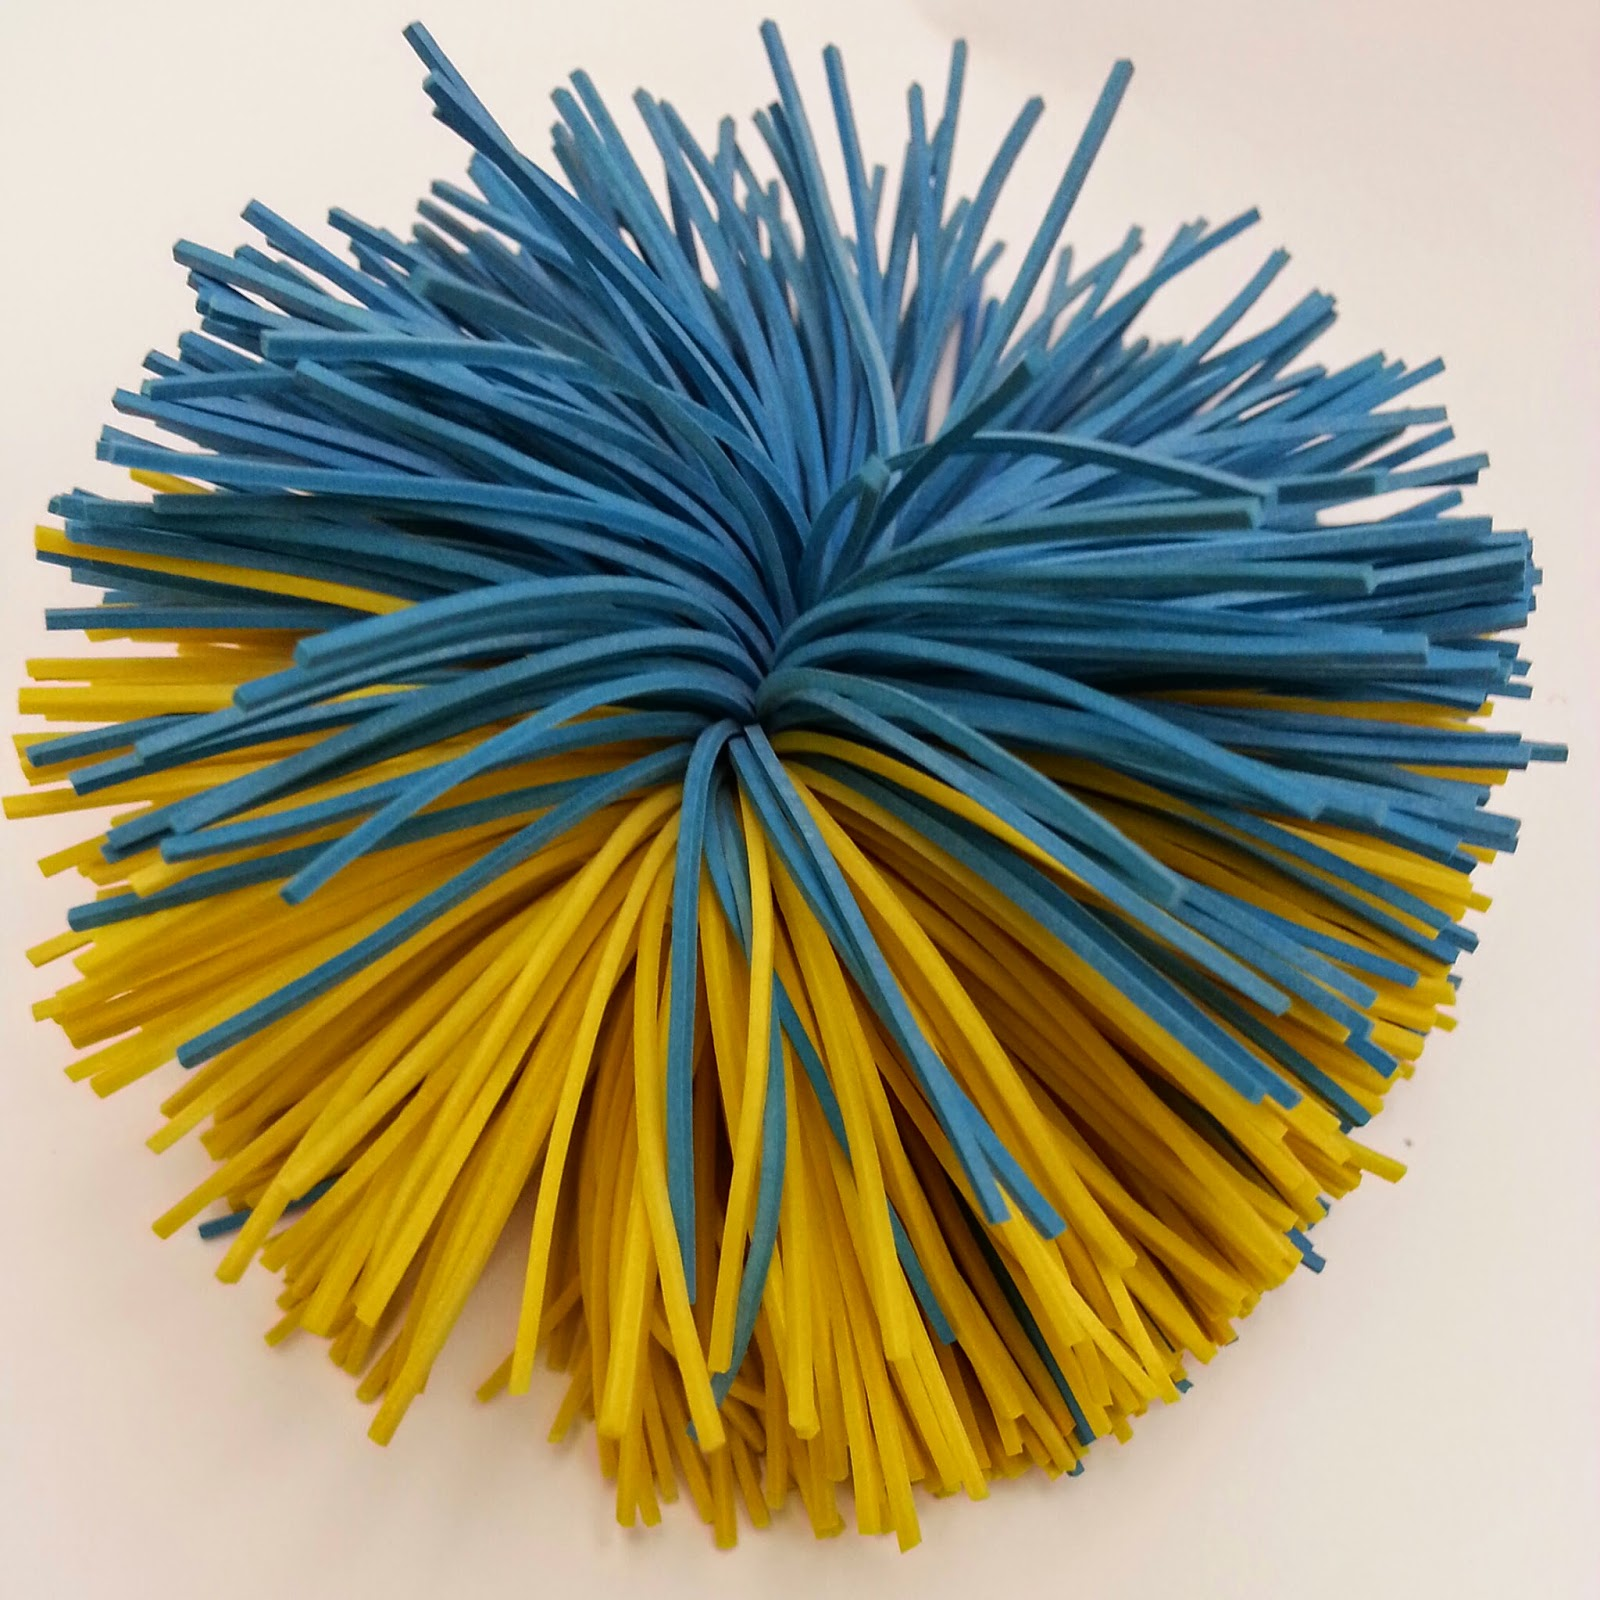 picture of koosh ball